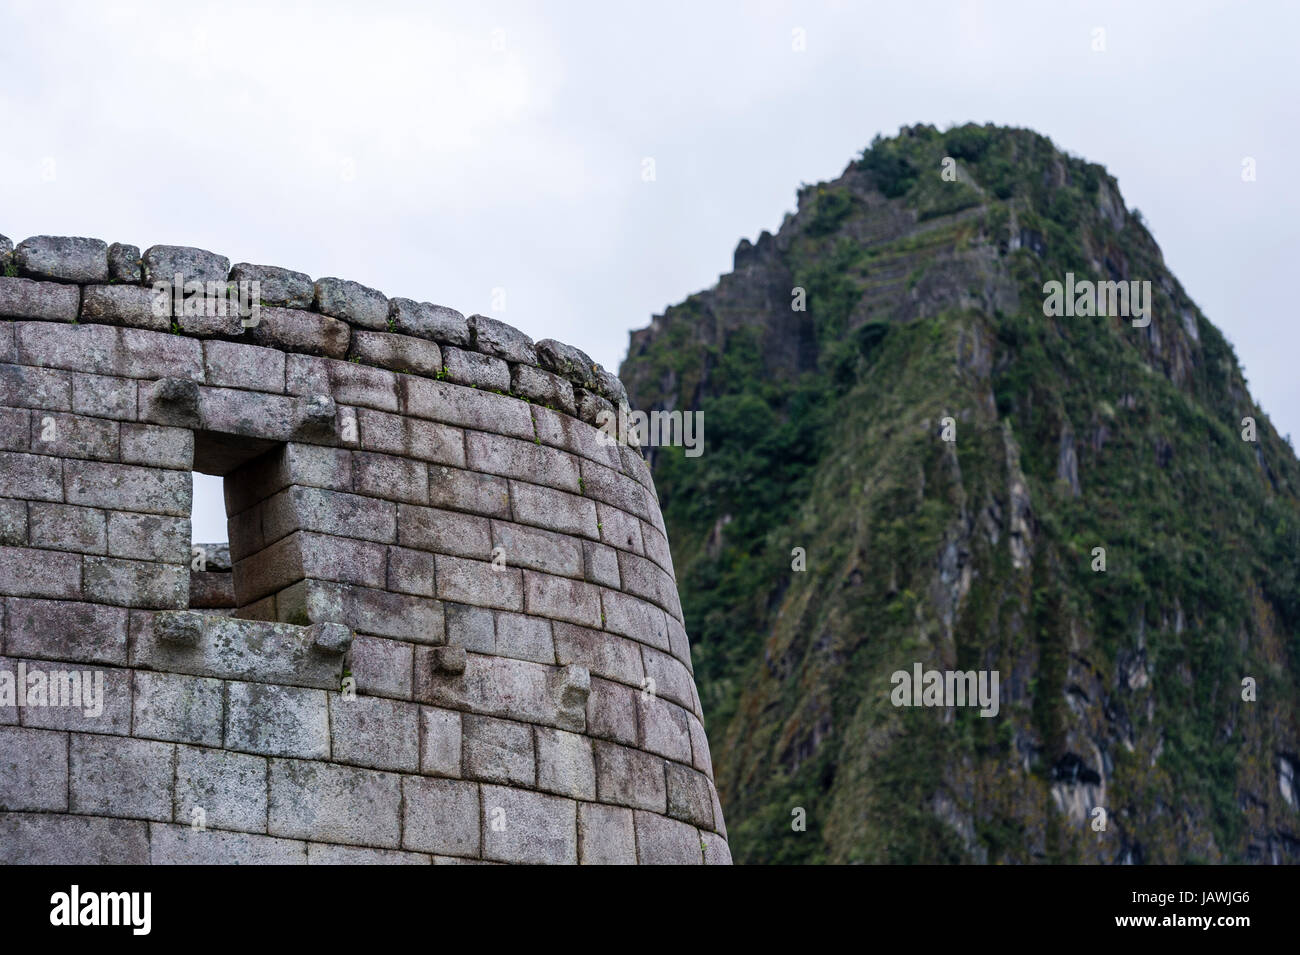 Inca polished dry-stone walls at the Temple of the Sun and Torreon, the